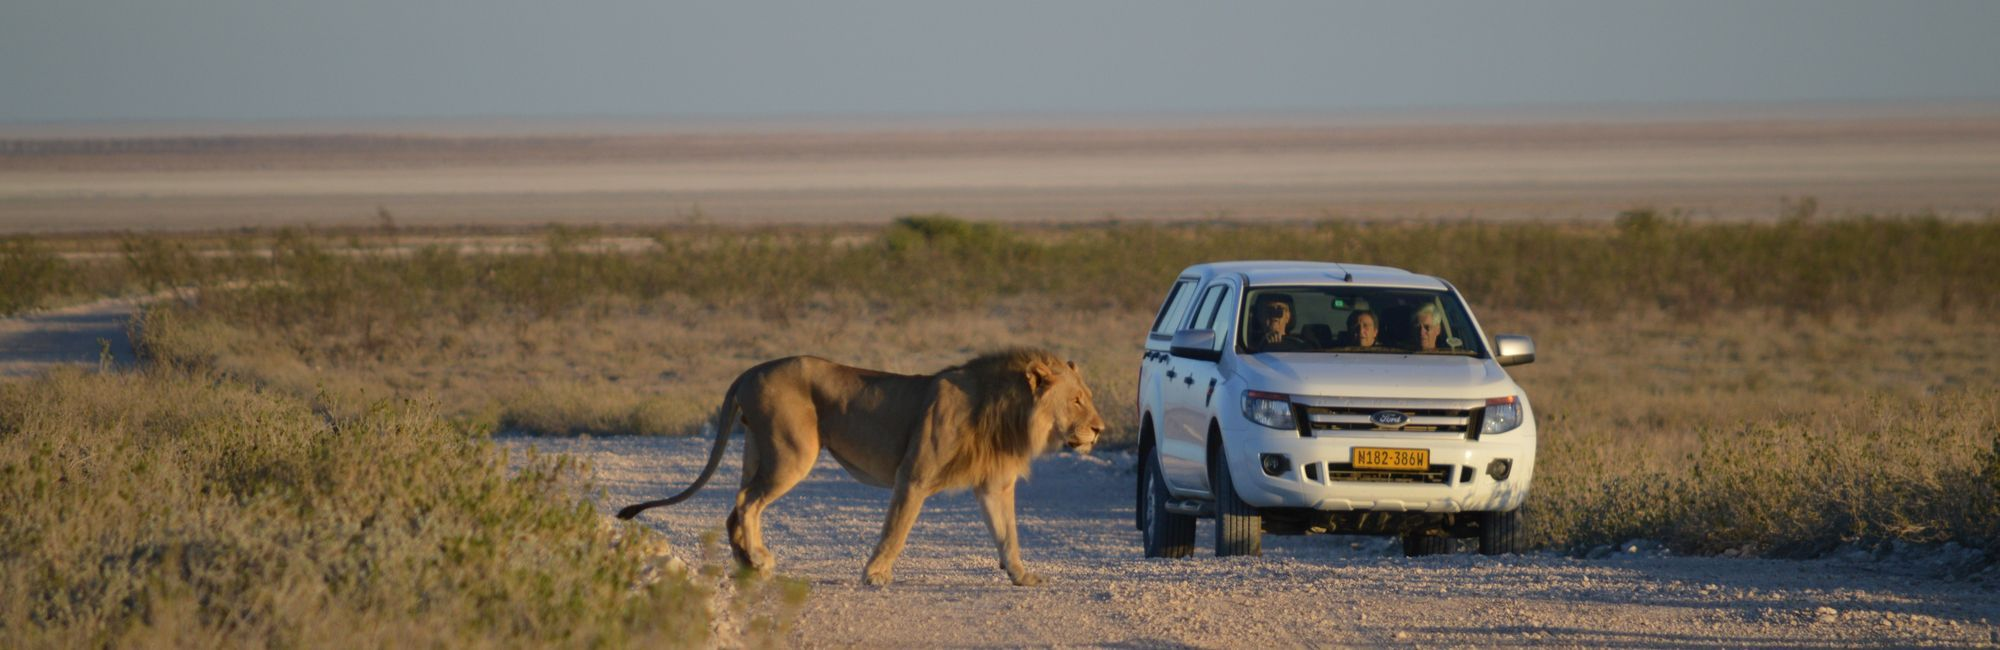 Namibie self drive safari